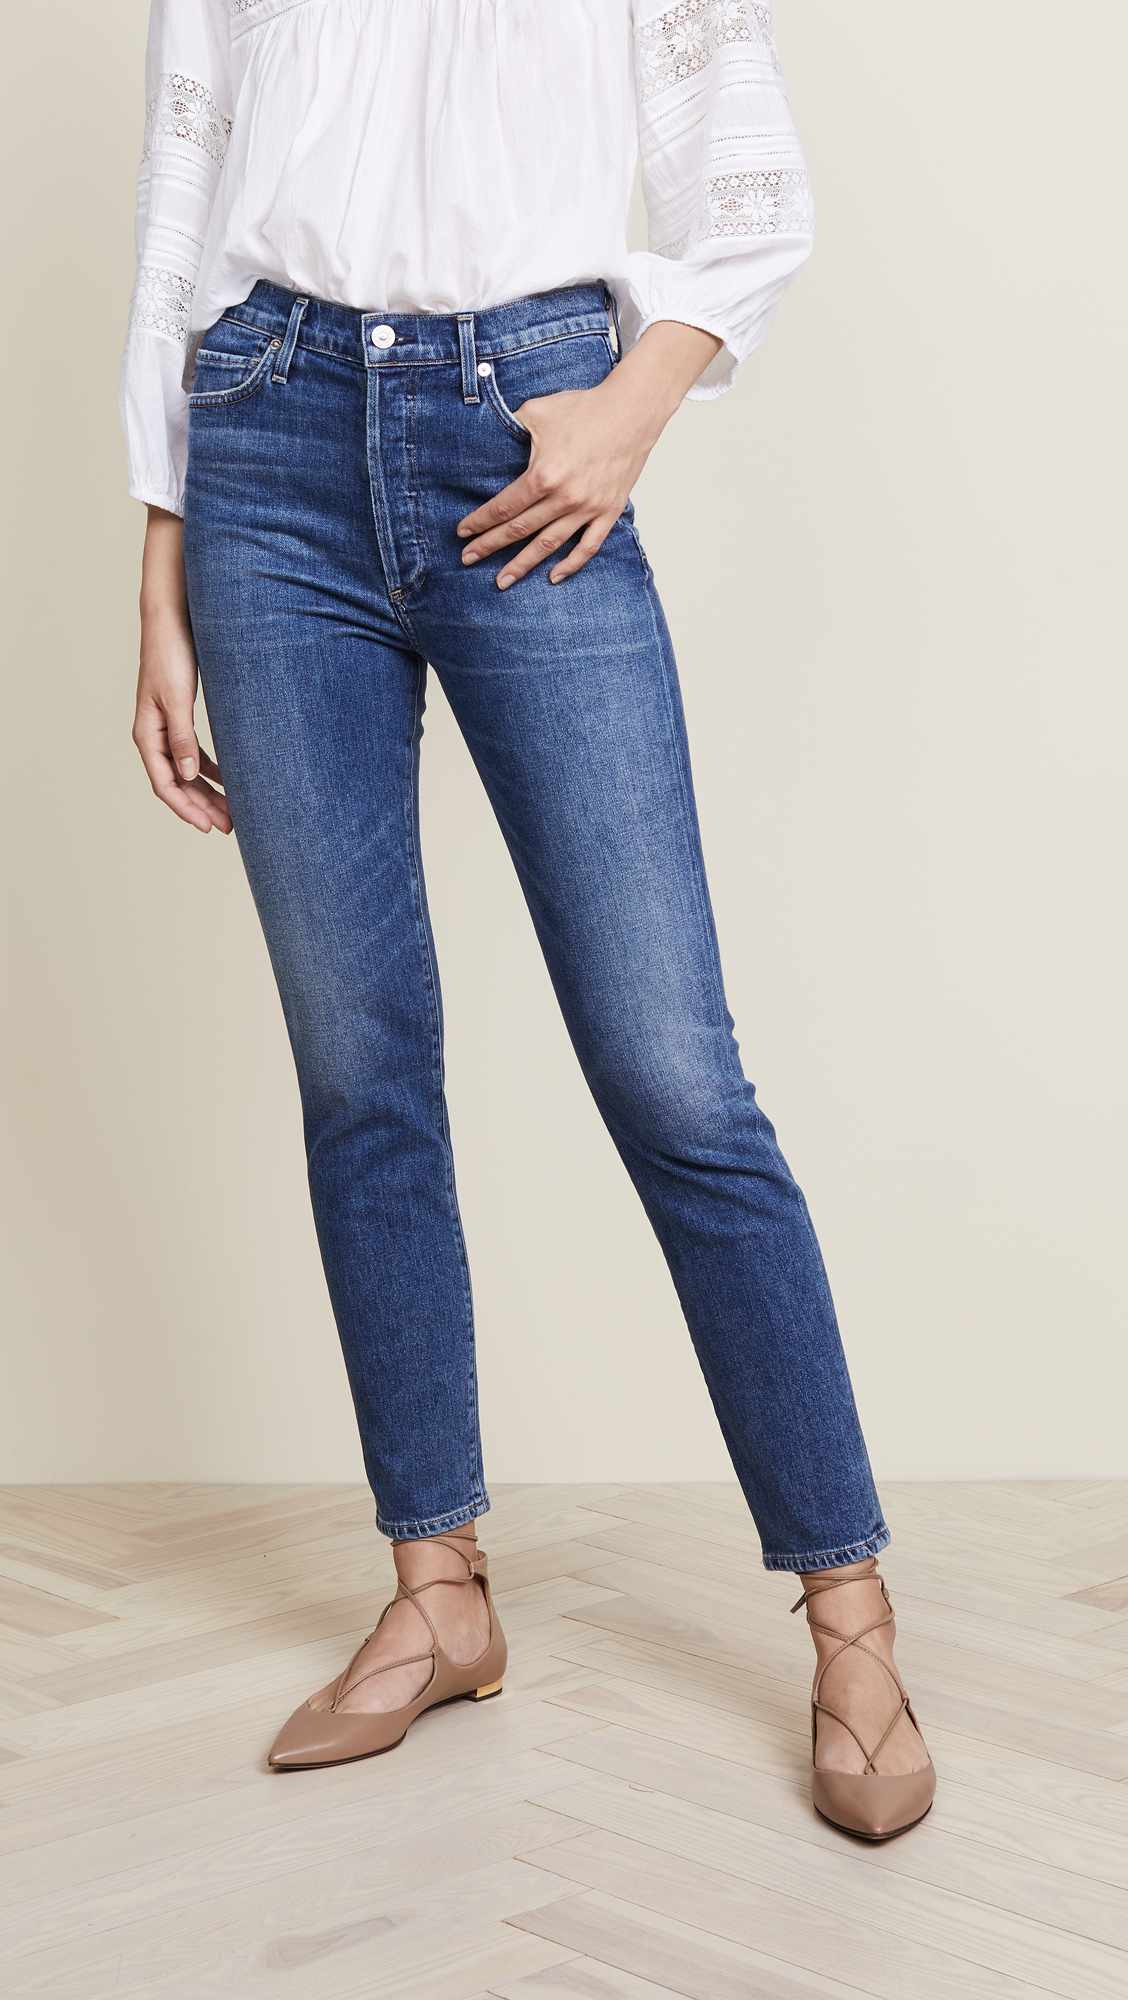 A woman modeling a pair of slim fit, ankle length jeans.